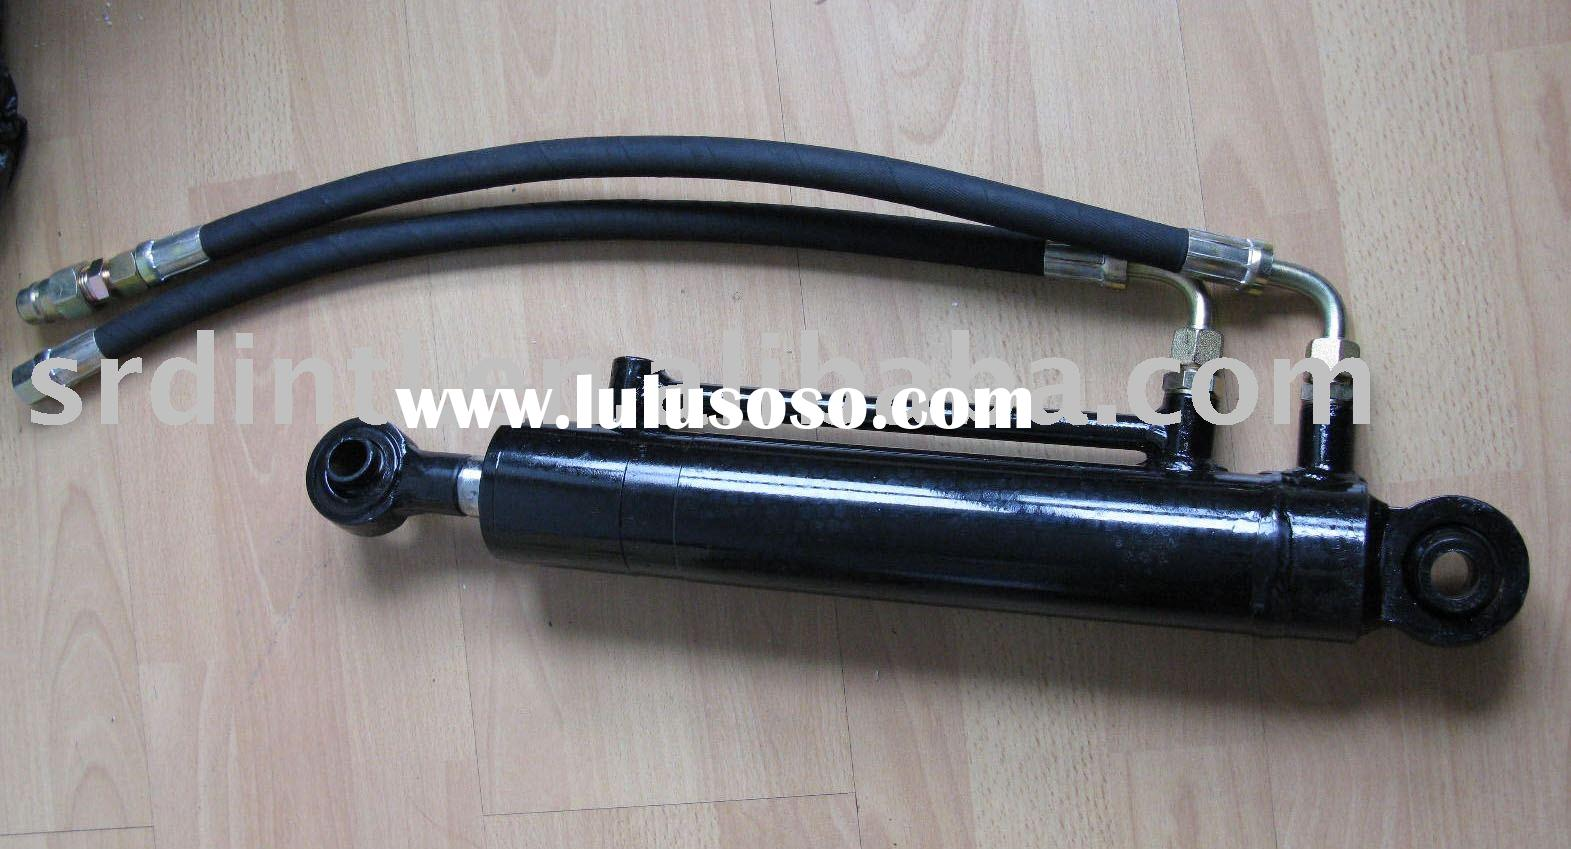 Cat 1 Top Link : Hydraulic top link for sale price china manufacturer